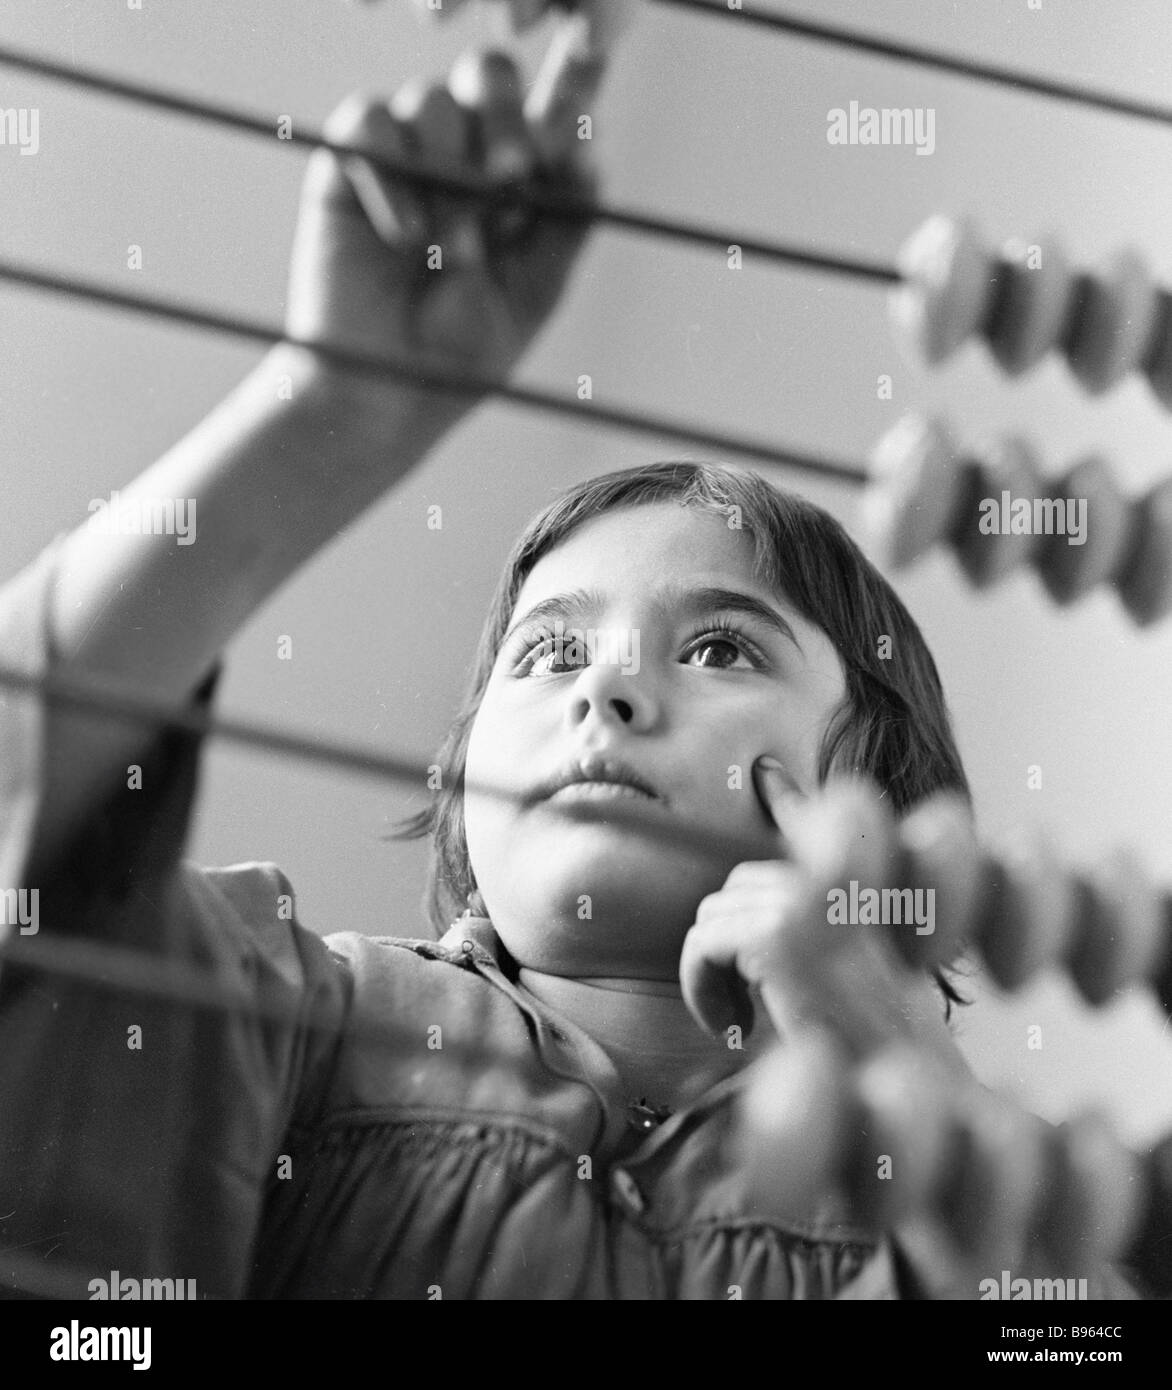 Tajik schoolgirl learning to count - Stock Image